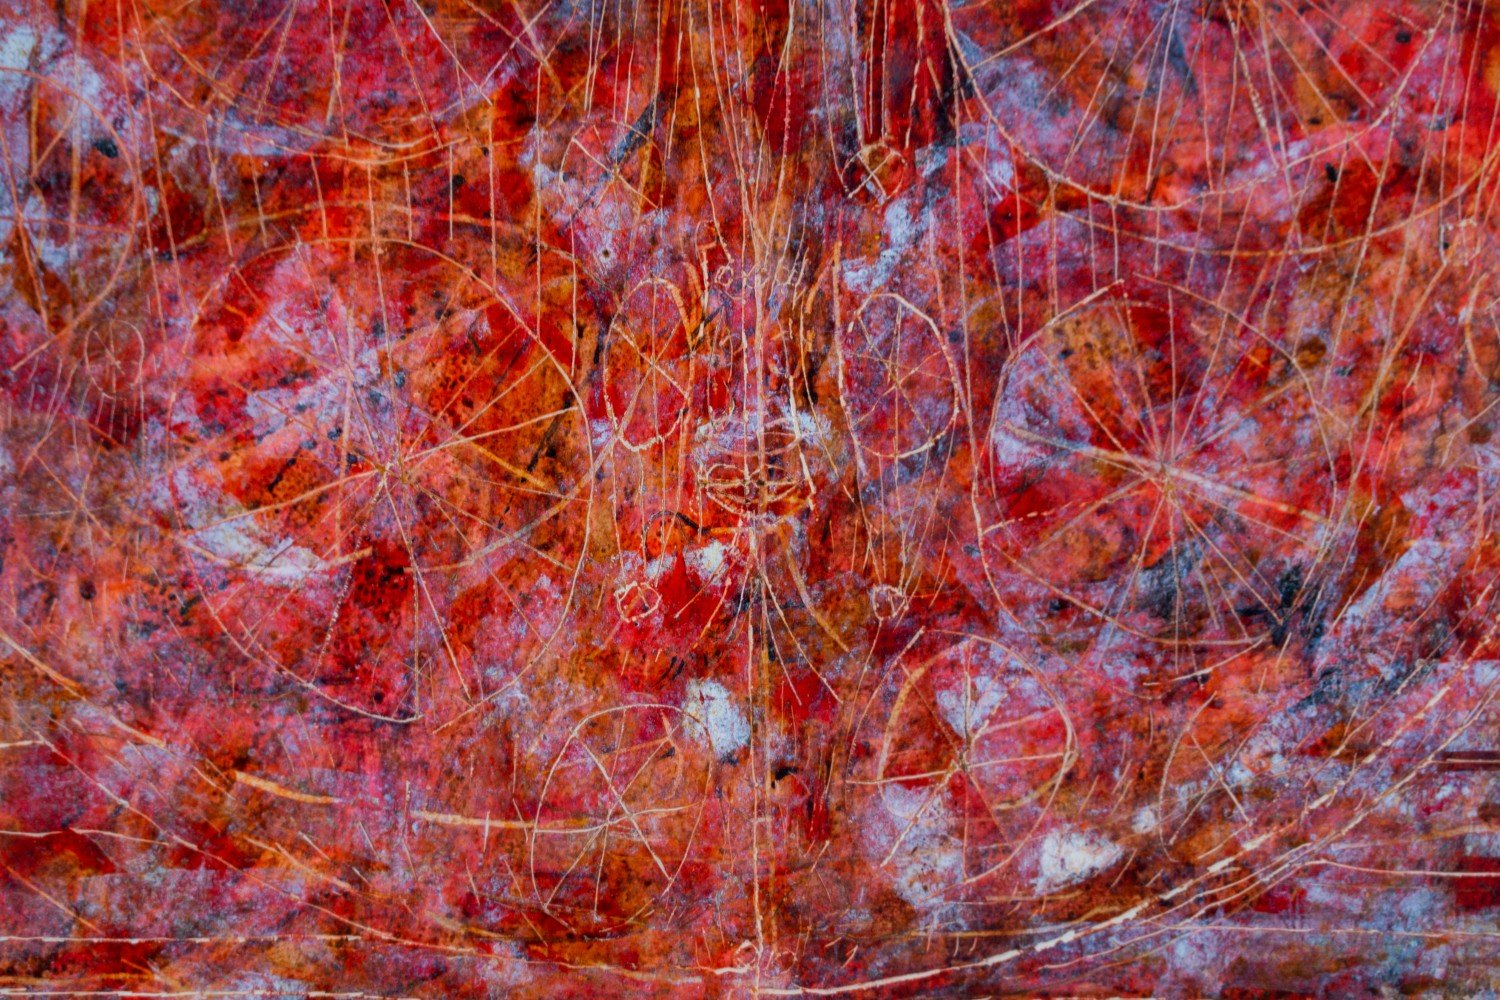 Abstract Figurative Encaustic and Sgraffito on Paper Painting: